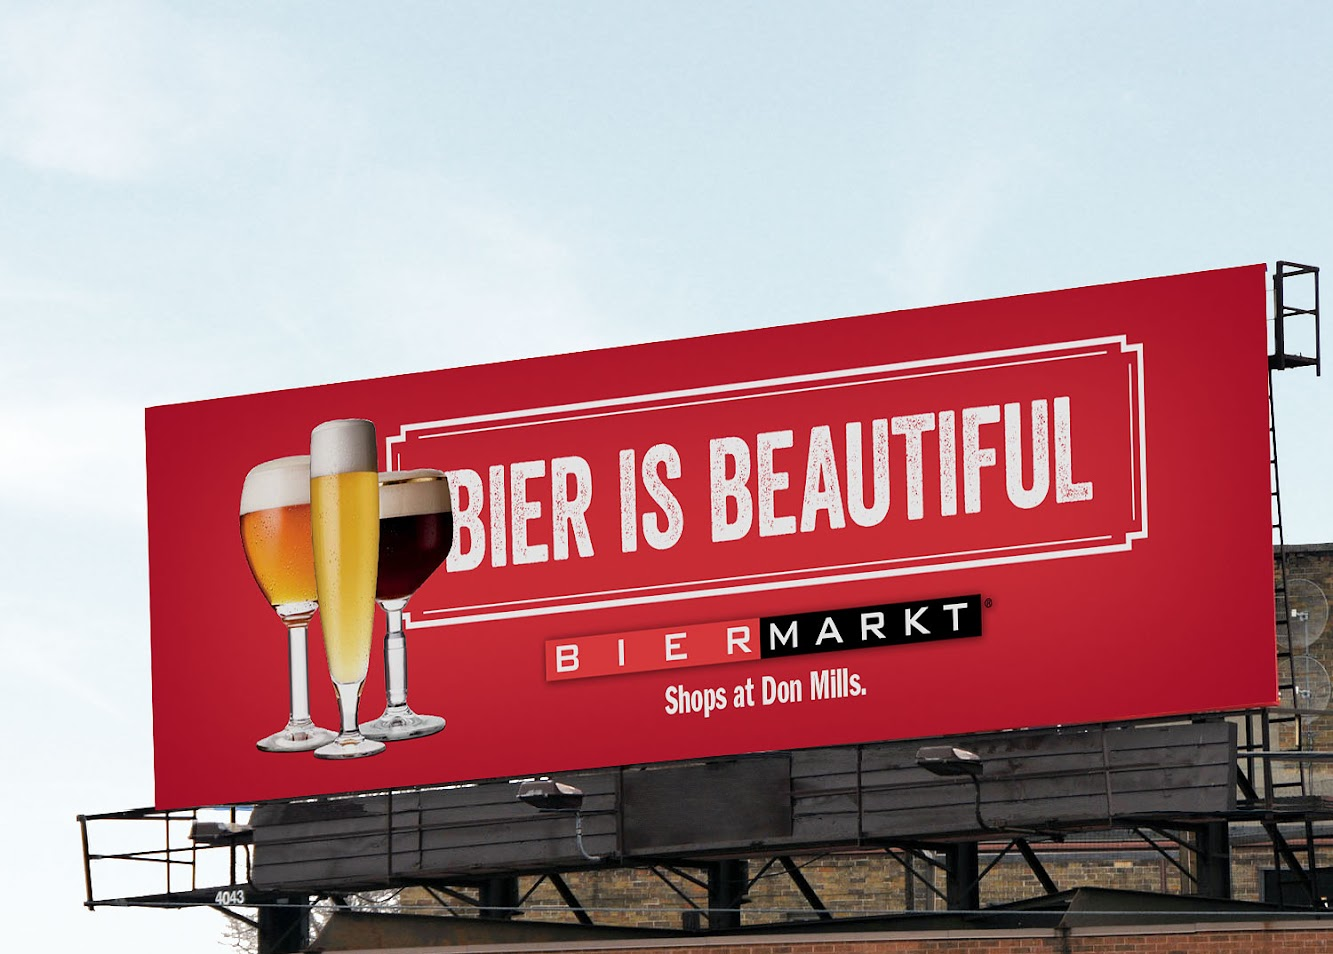 Toronto's Bier Markt Makes Beer Beautiful In BillBoards